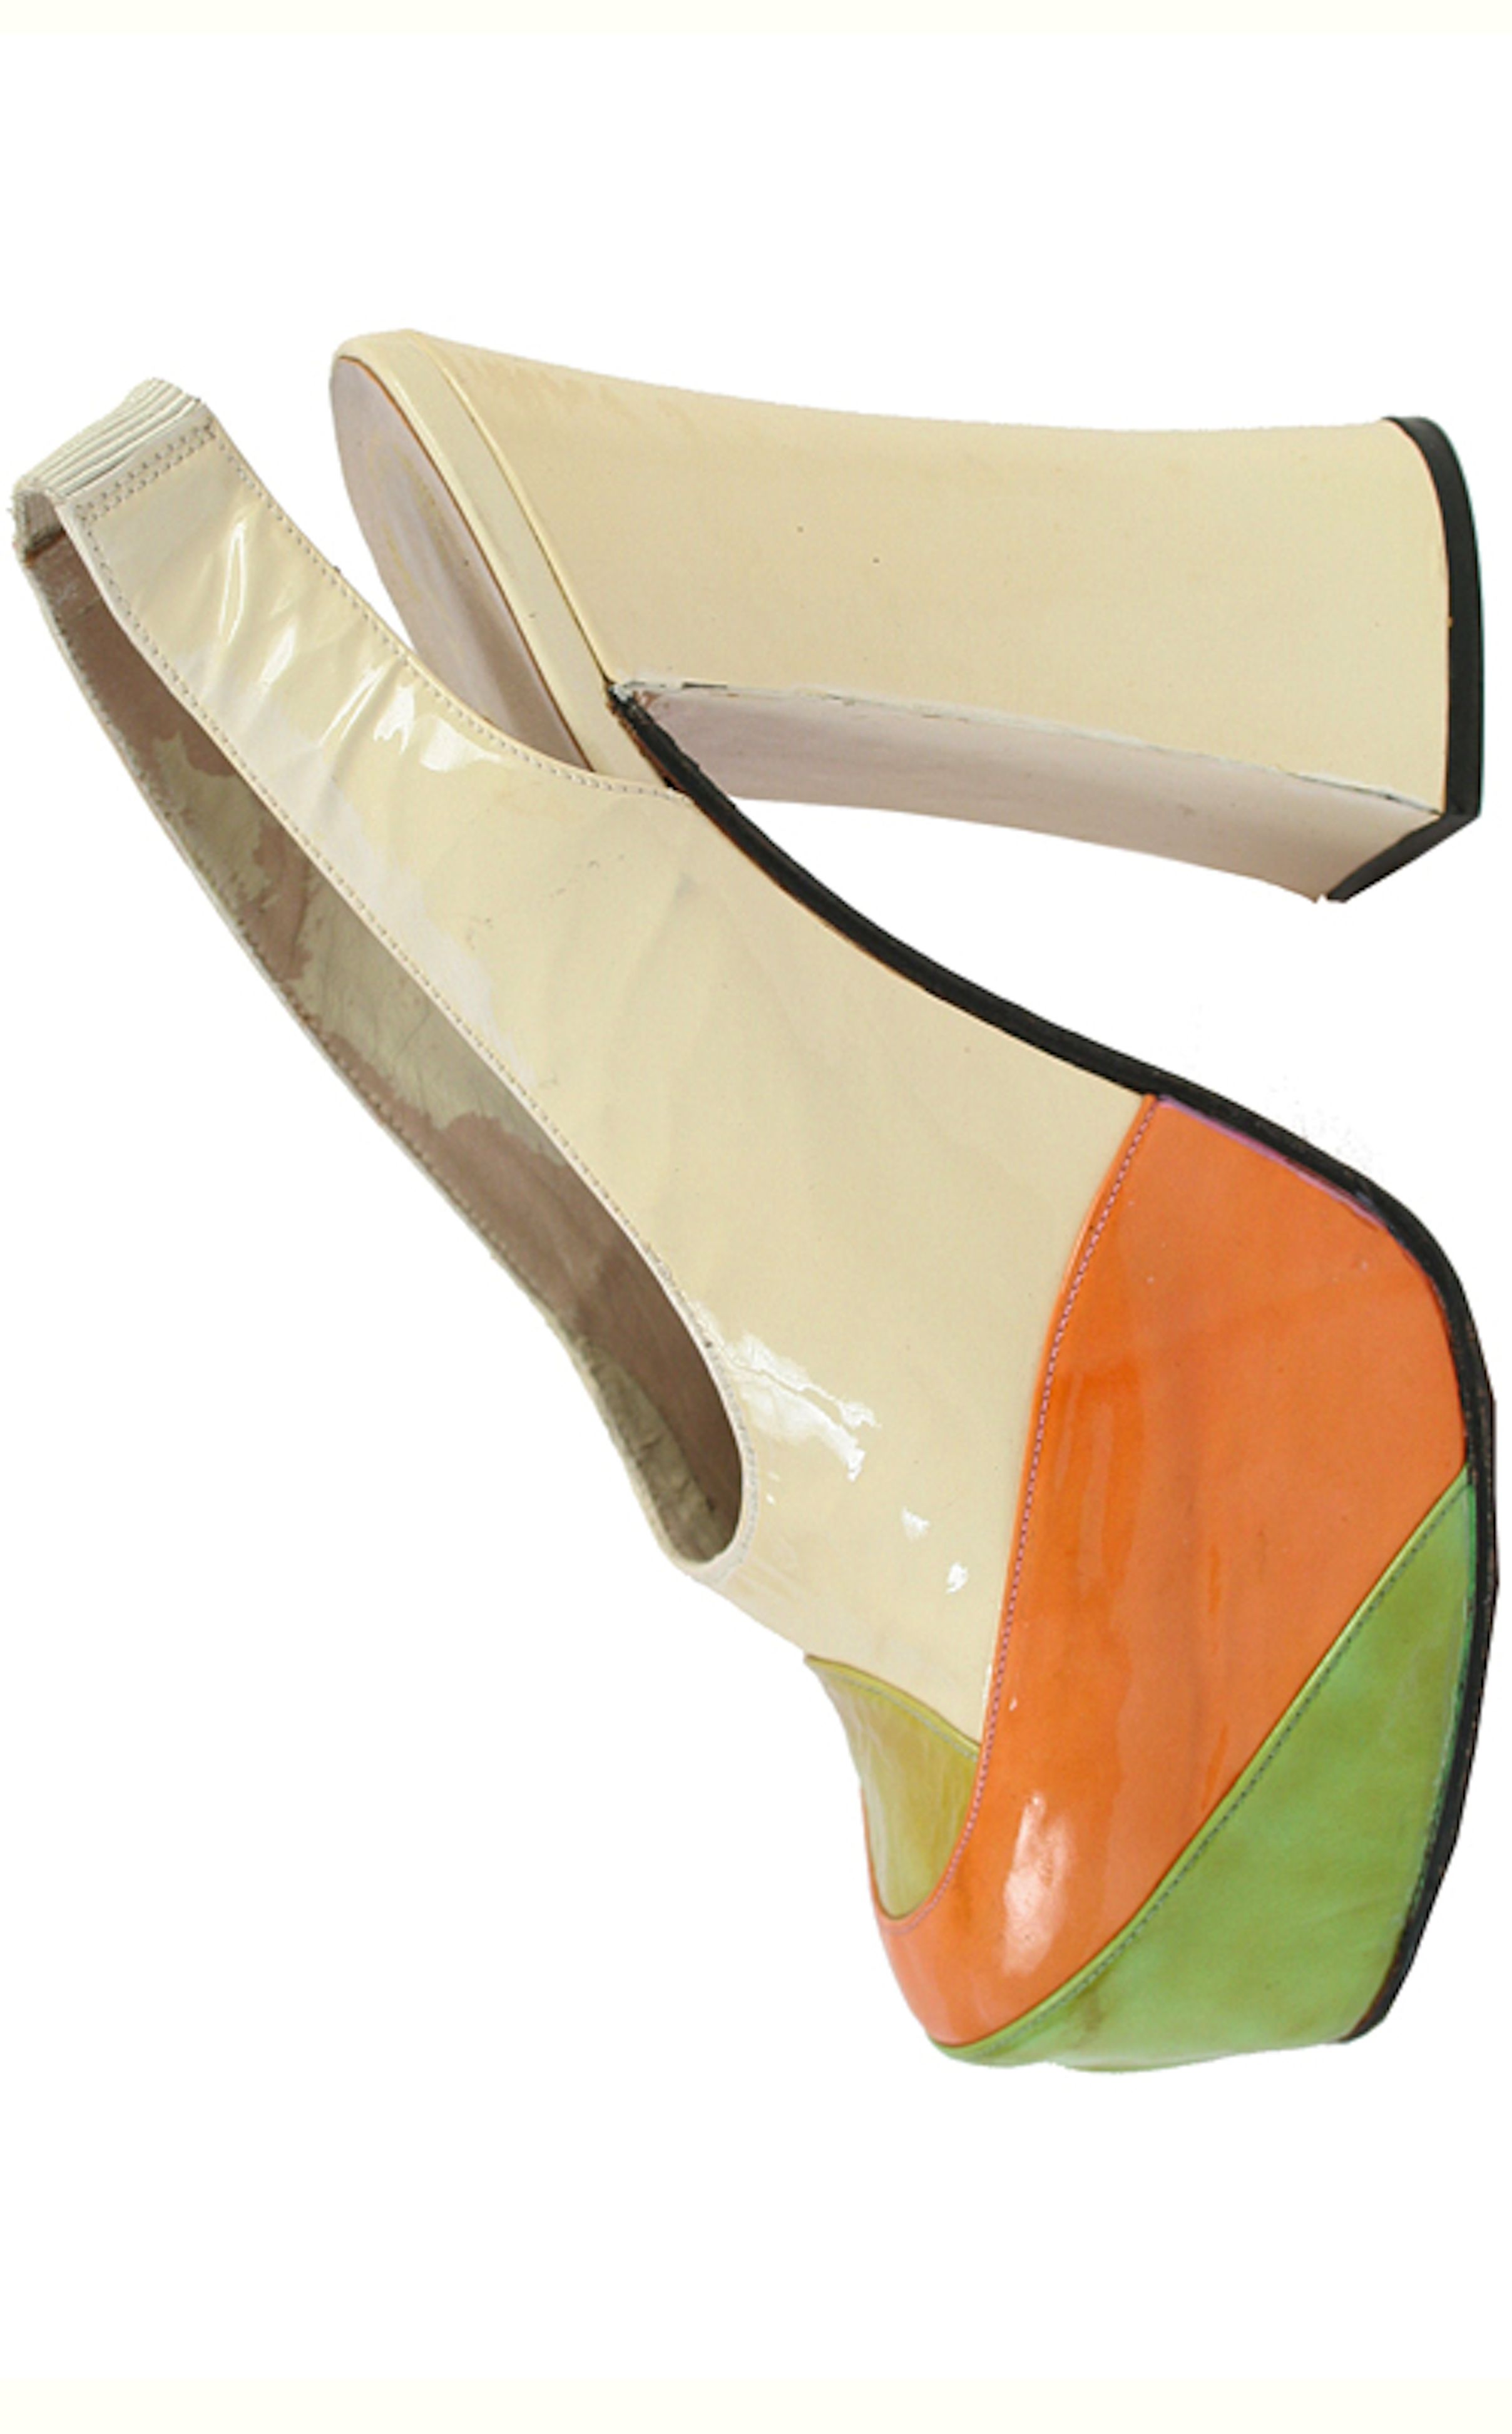 Vintage shoes - Lady's Plarform Shoes with Pieces of Color Leathe Applied to the Toe - 1970s - Spain